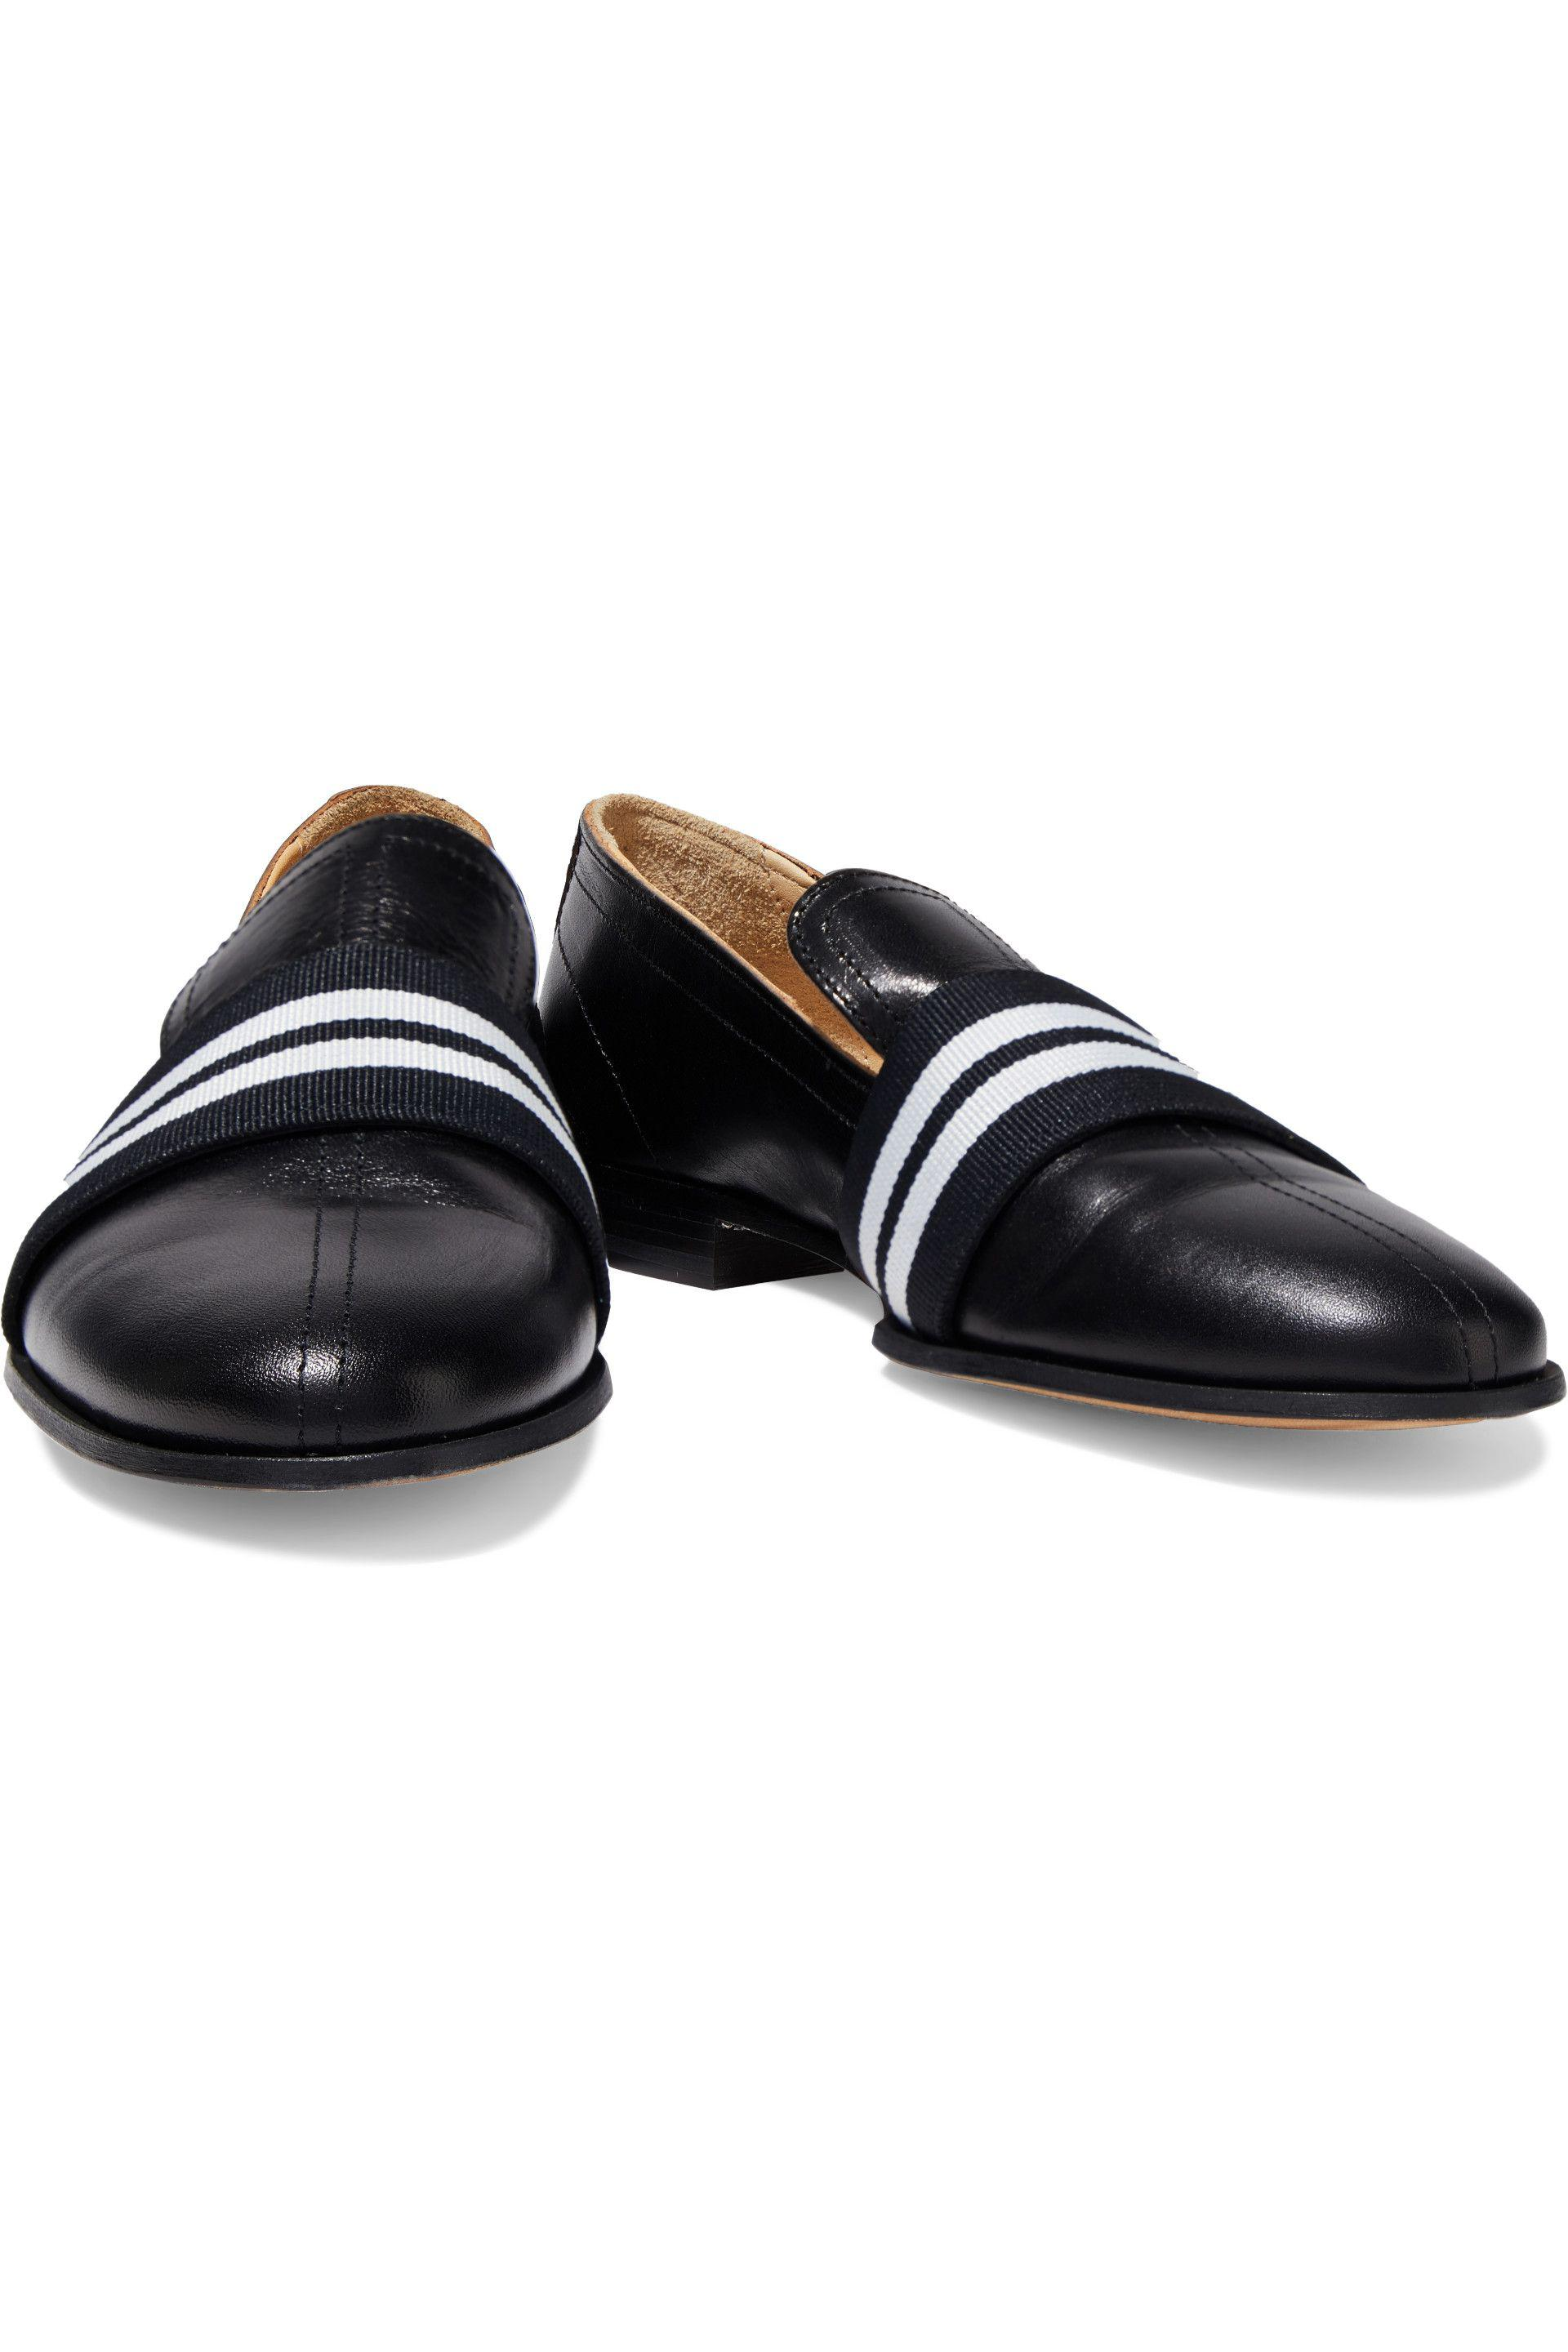 f82a75ccc7 Lyst - Rag & Bone Grosgrain-trimmed Leather Loafers in Black